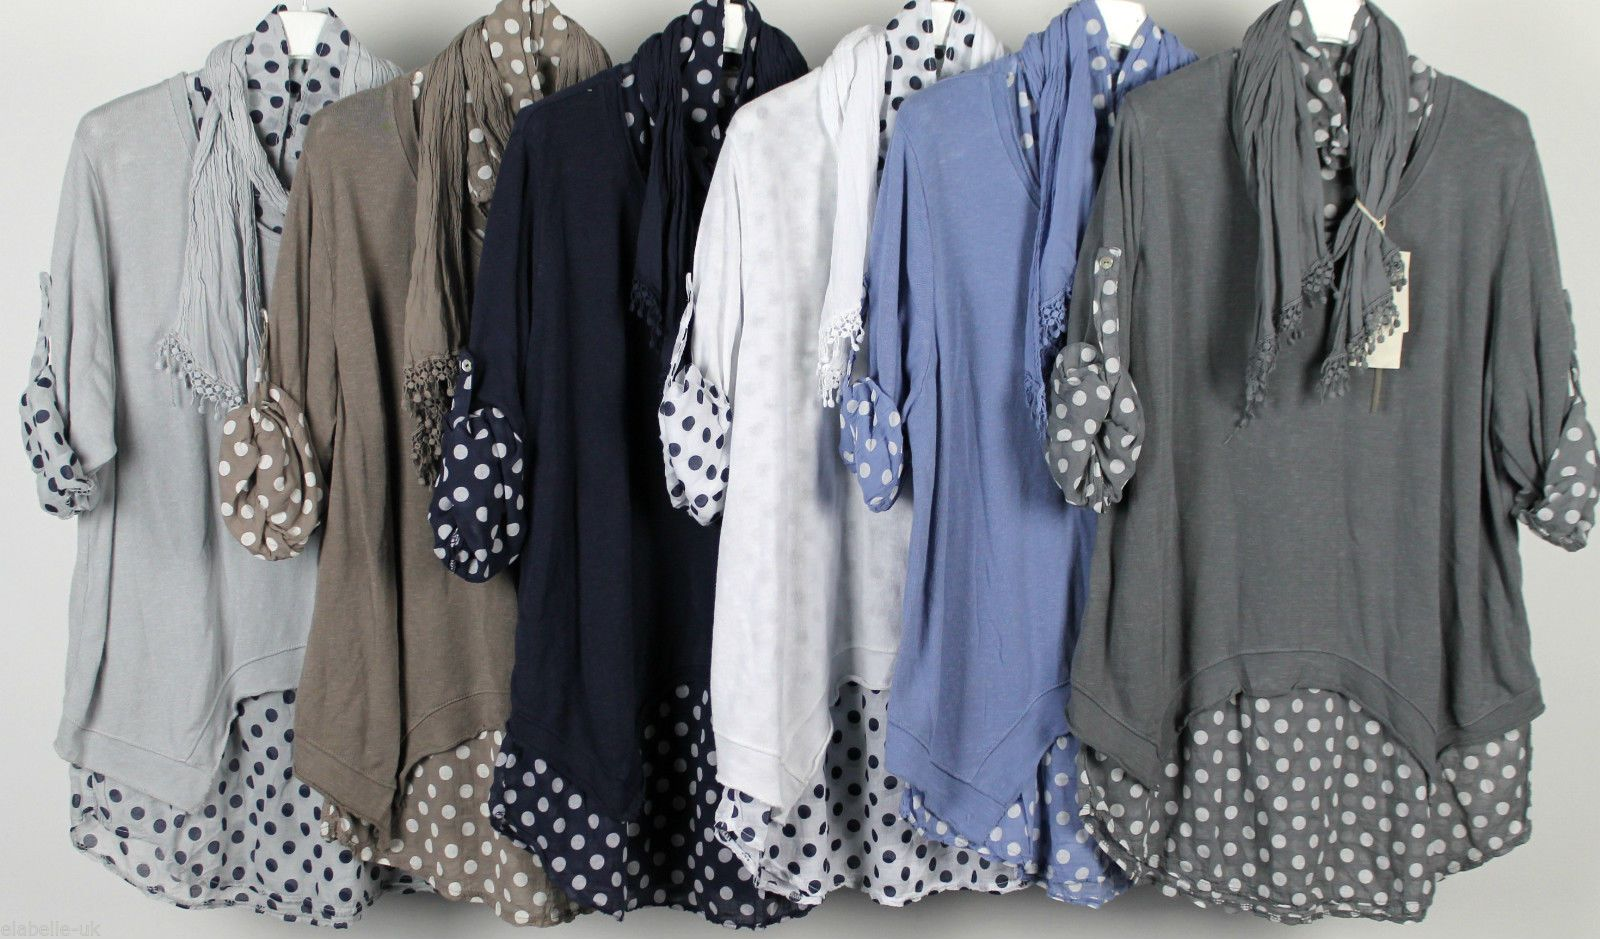 NEW LADIES LAGENLOOK BOHO LAYERED POLKA DOT SHIRT WITH SCARF & PLAIN OVERTOP in Clothes, Shoes & Accessories, Women's Clothing, Tops & Shirts | eBay